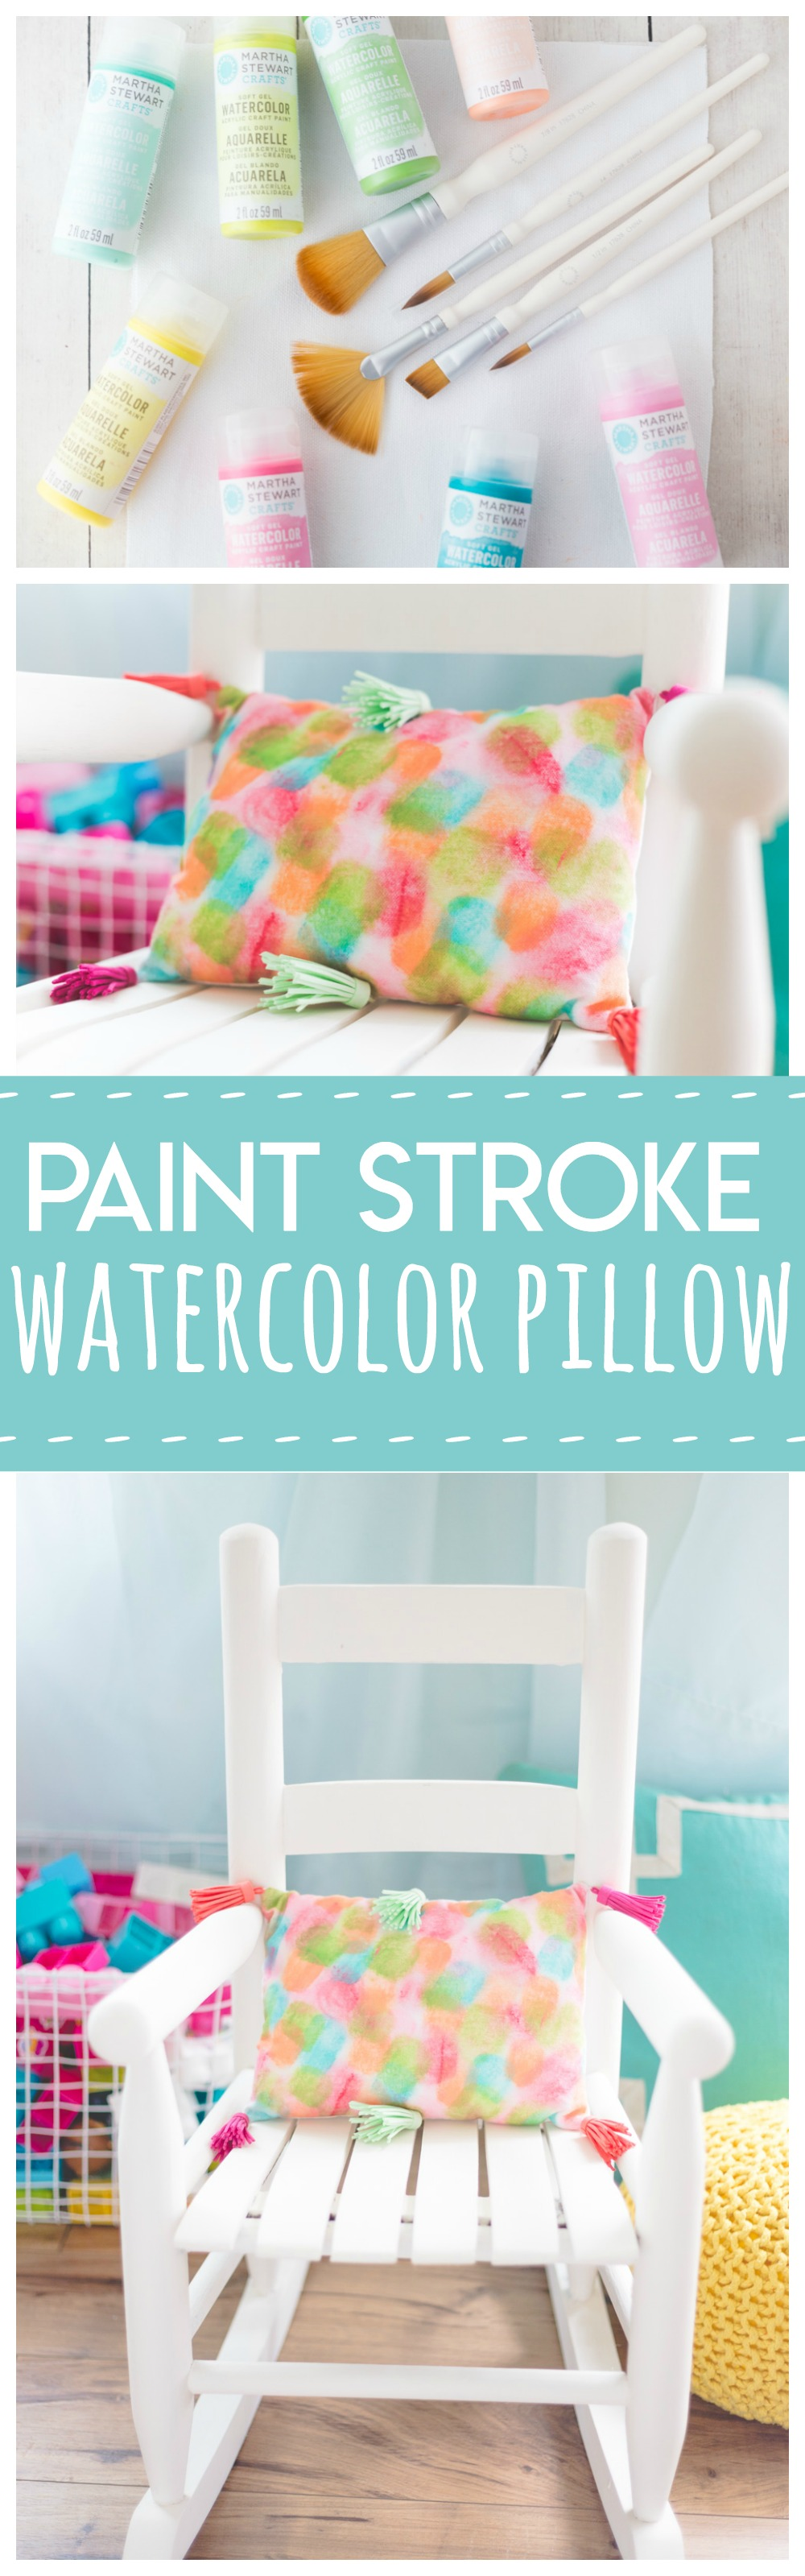 Paint Stroke Watercolor Pillow is a fun and simple project for any kids room!